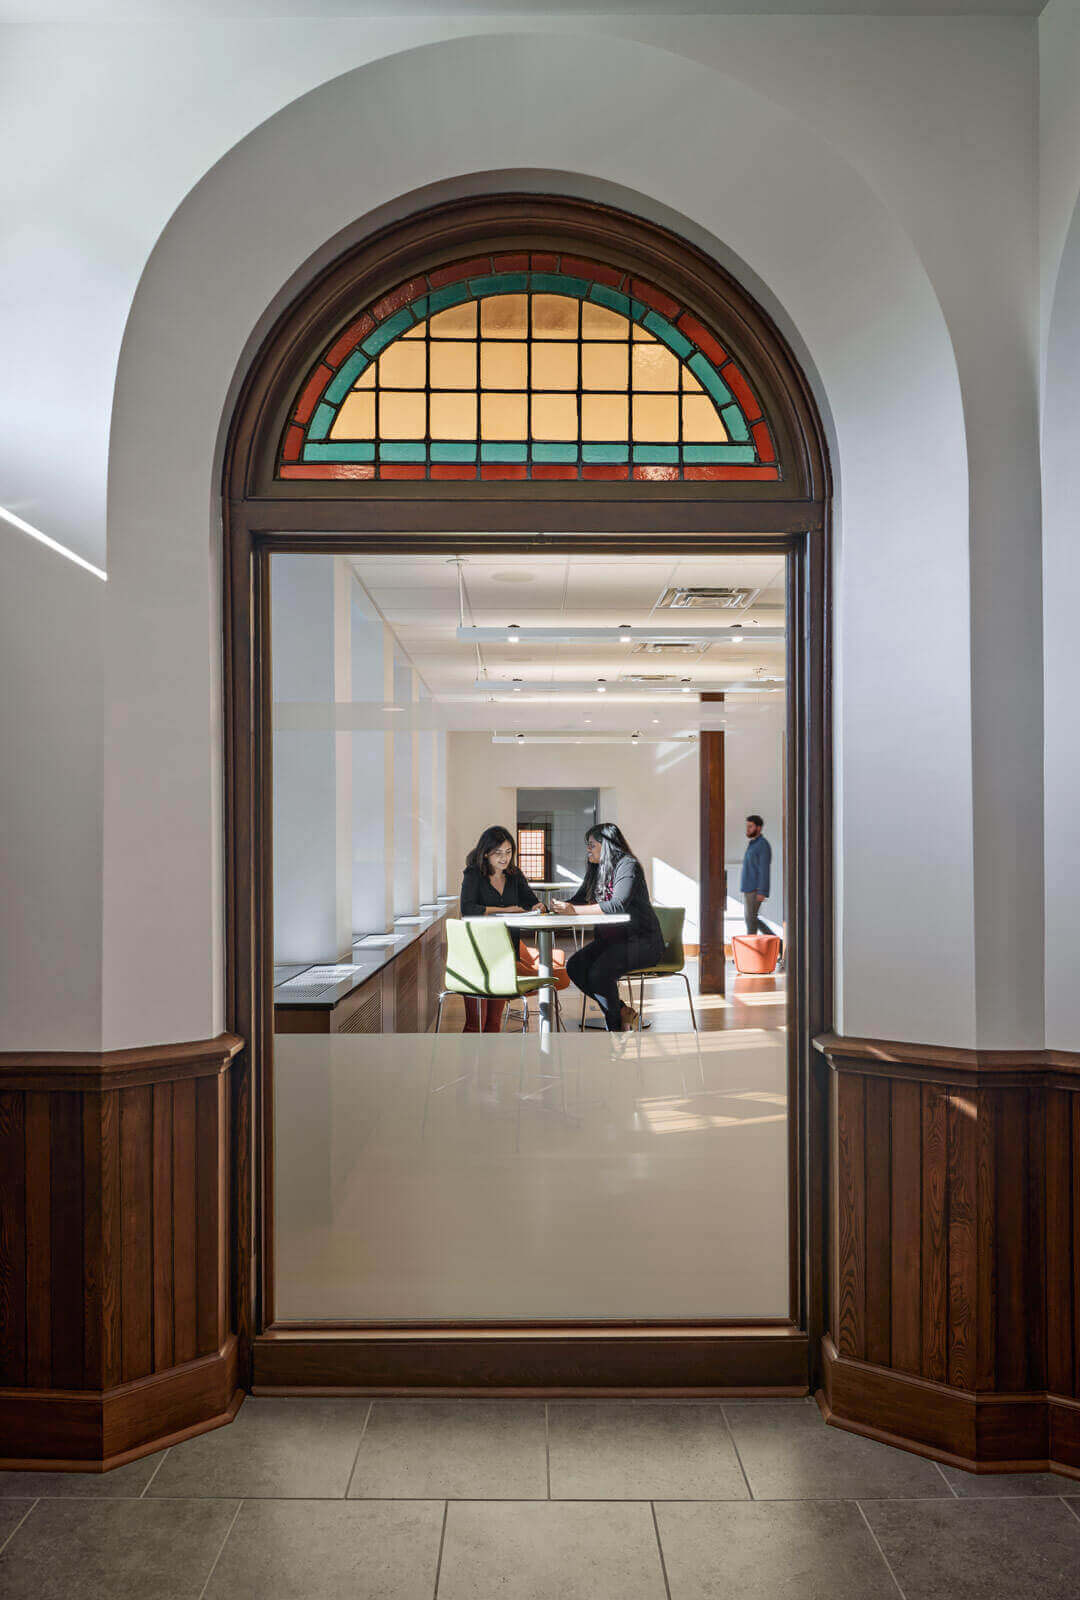 Two students studying, shot through an arched window with renovated glass detailing and wooden base-boards.